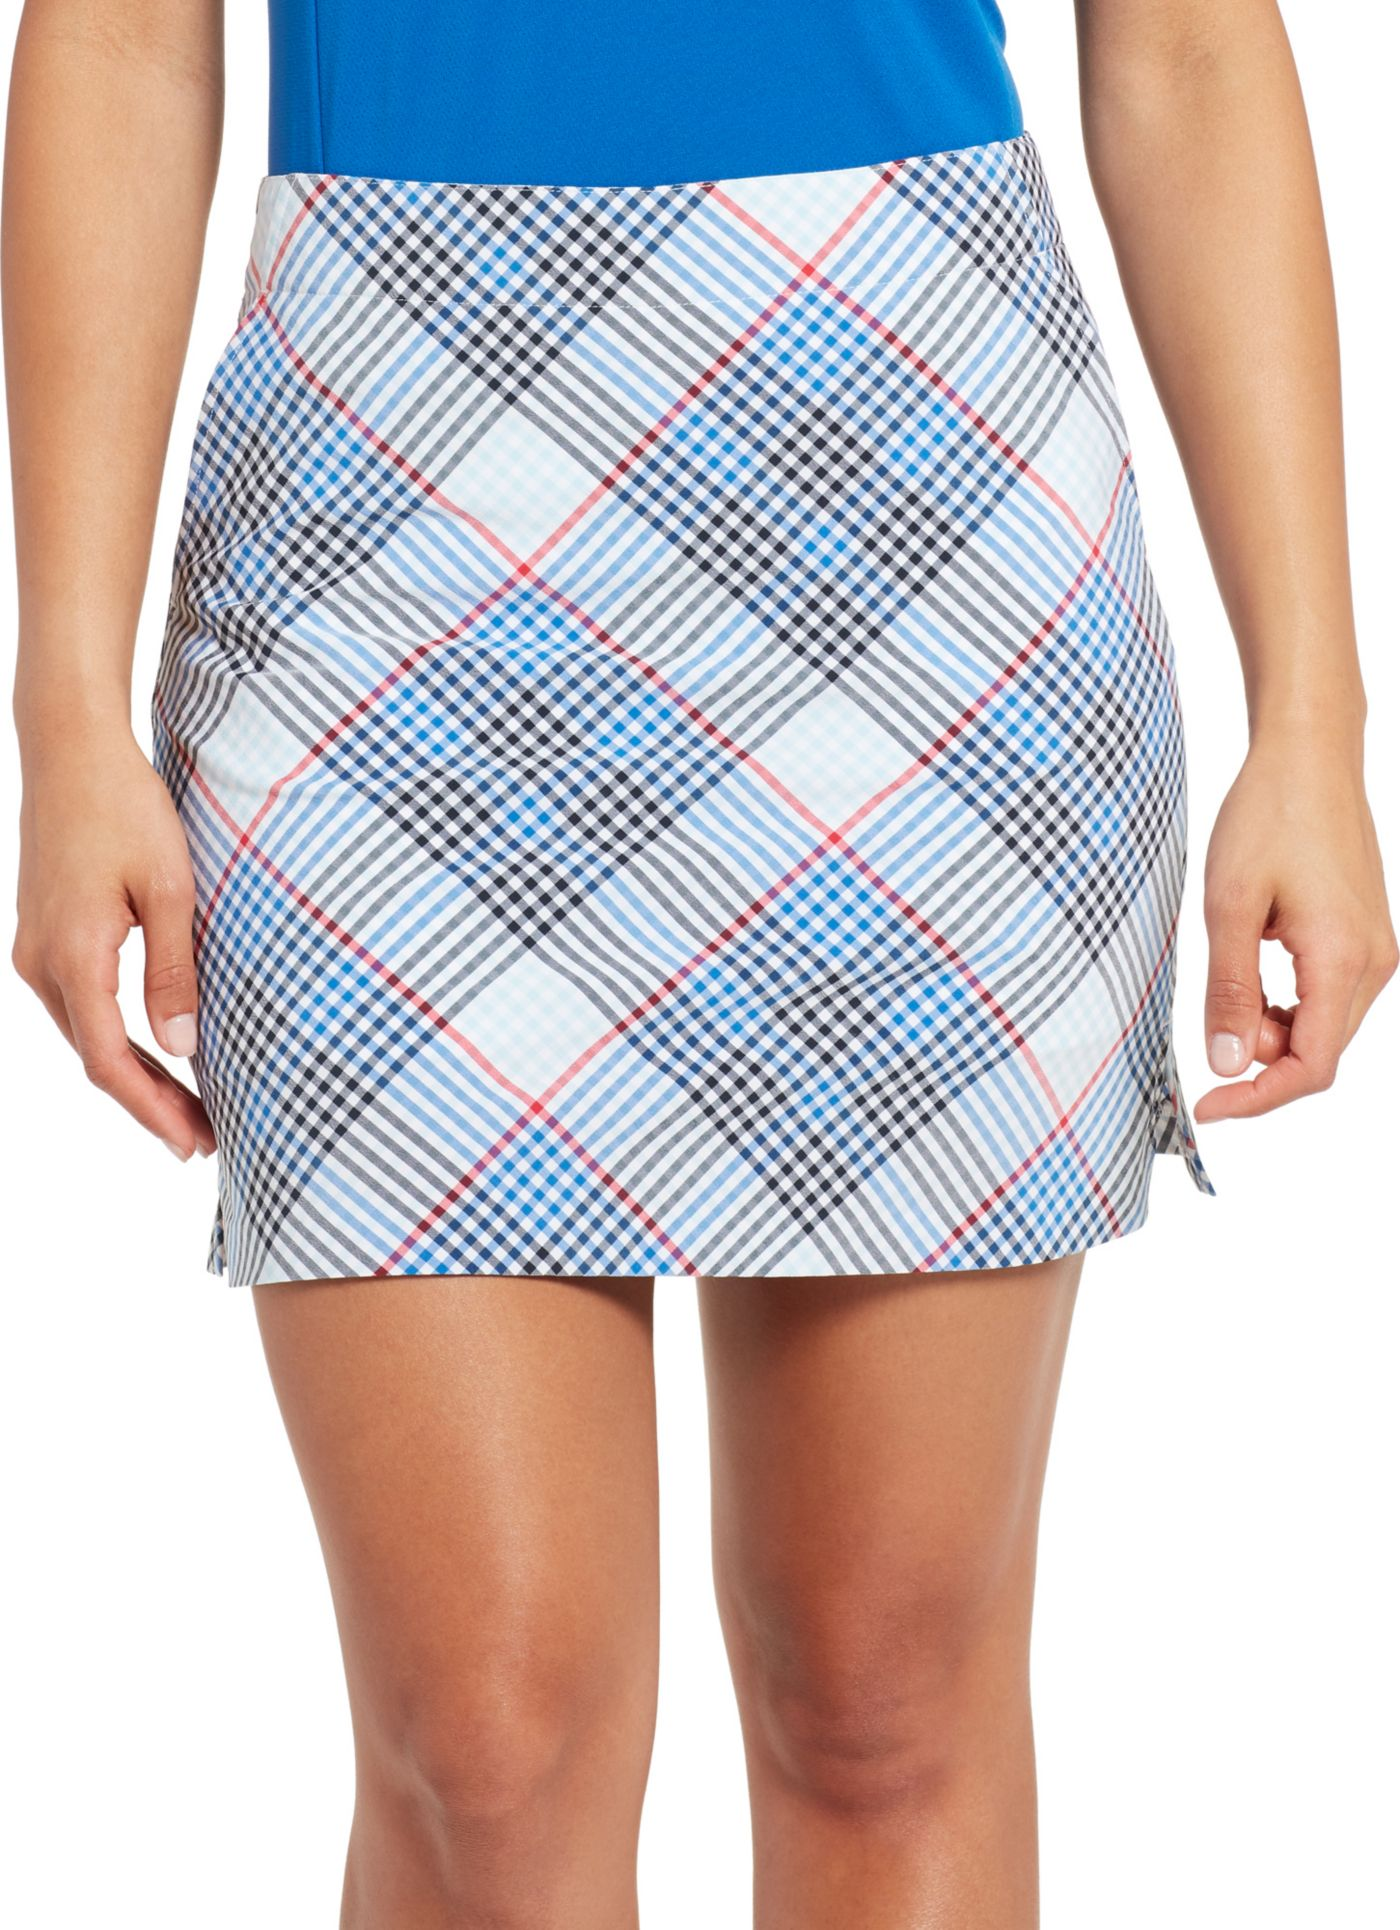 Lady Hagen Gingham Woven Golf Skort